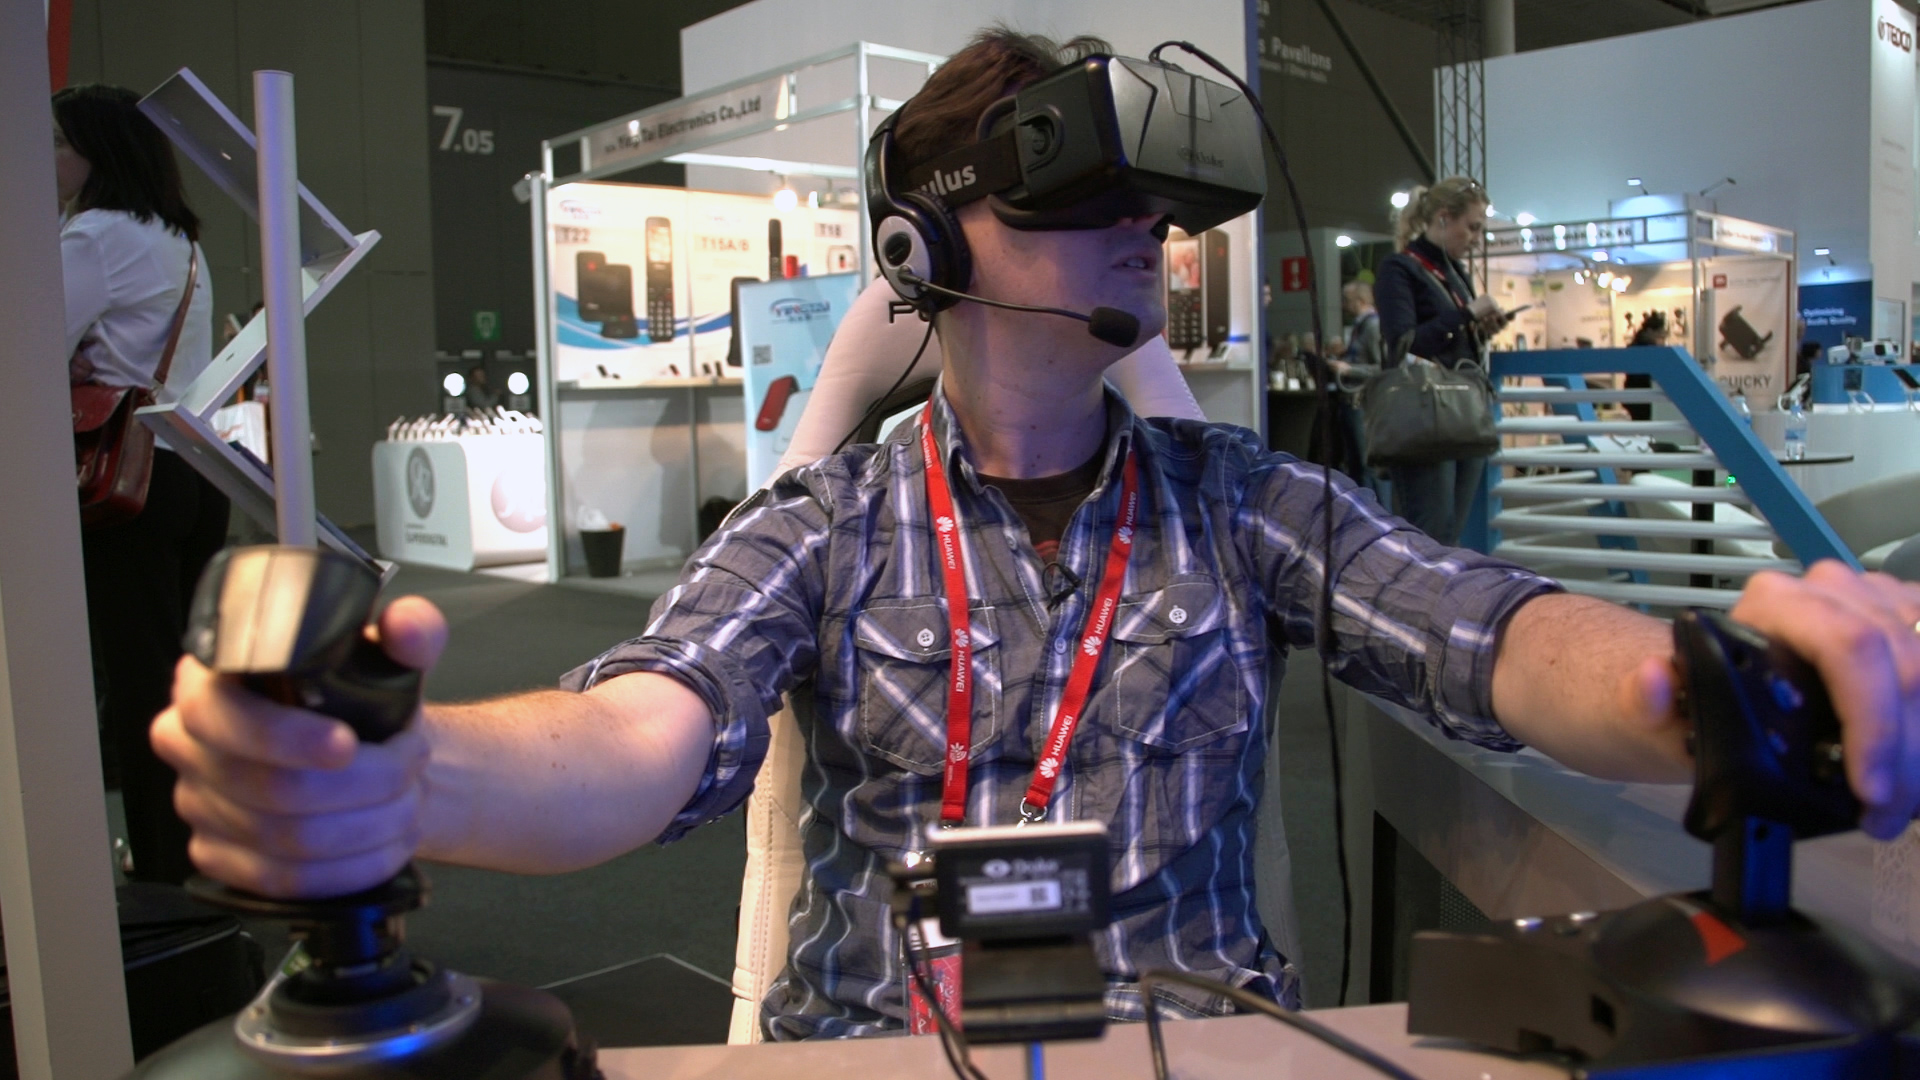 CNET Puts Team VR to the Test in Virtual Mars Mission